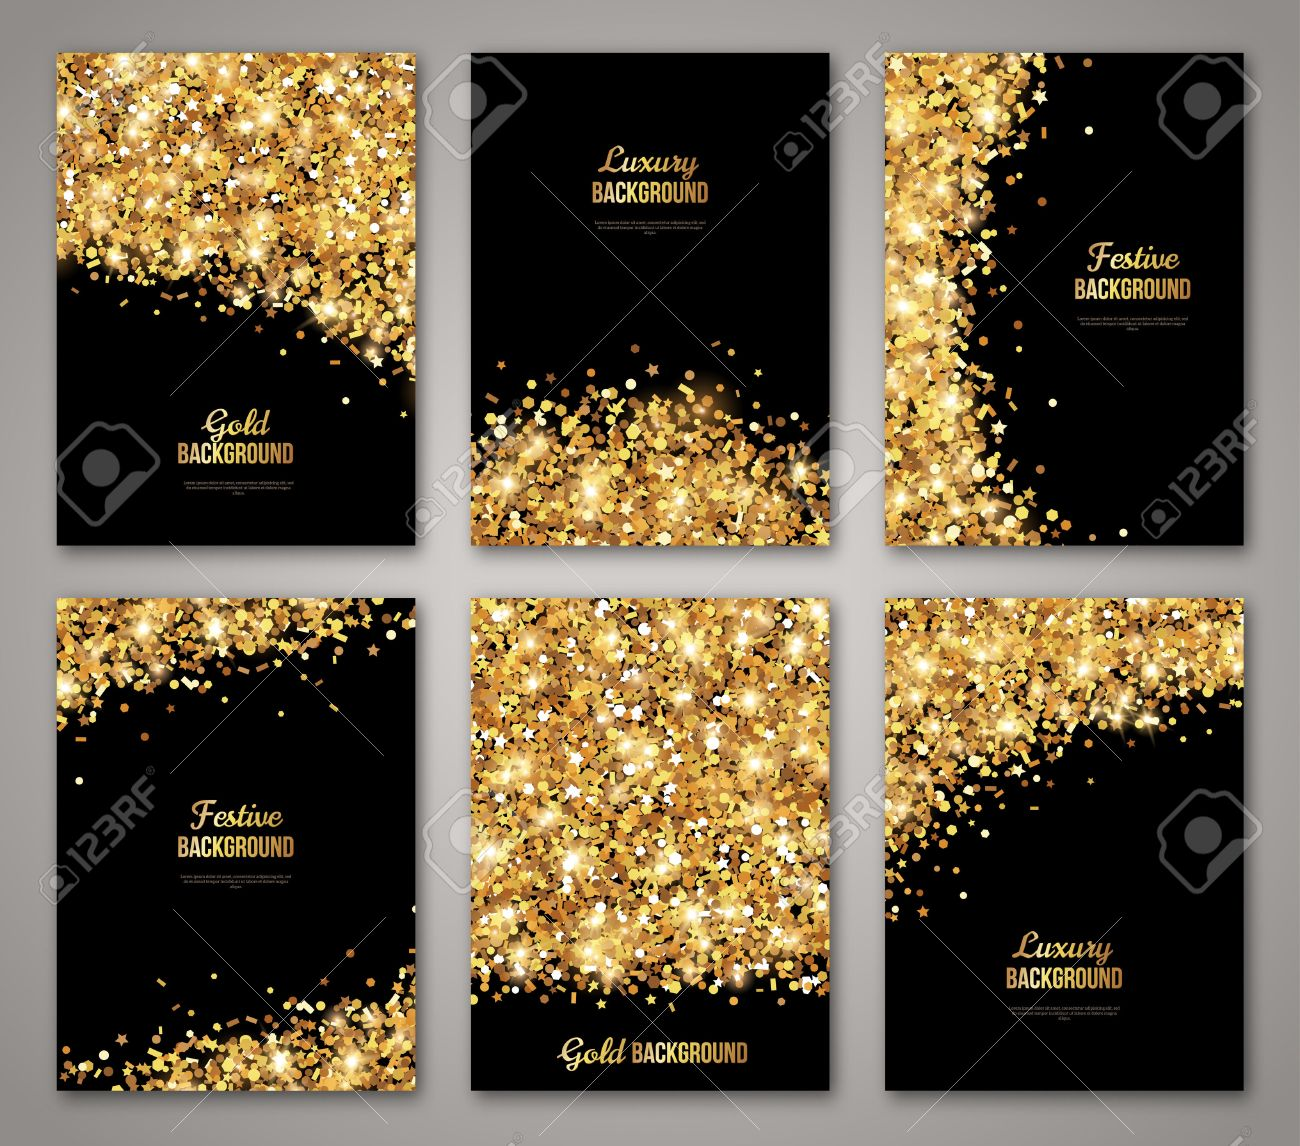 Set of Black and Gold , Greeting Card Design. Golden Dust. Illustration. Happy New Year and Christmas Posters Invitation Template. Place for your Text Message. - 51299263